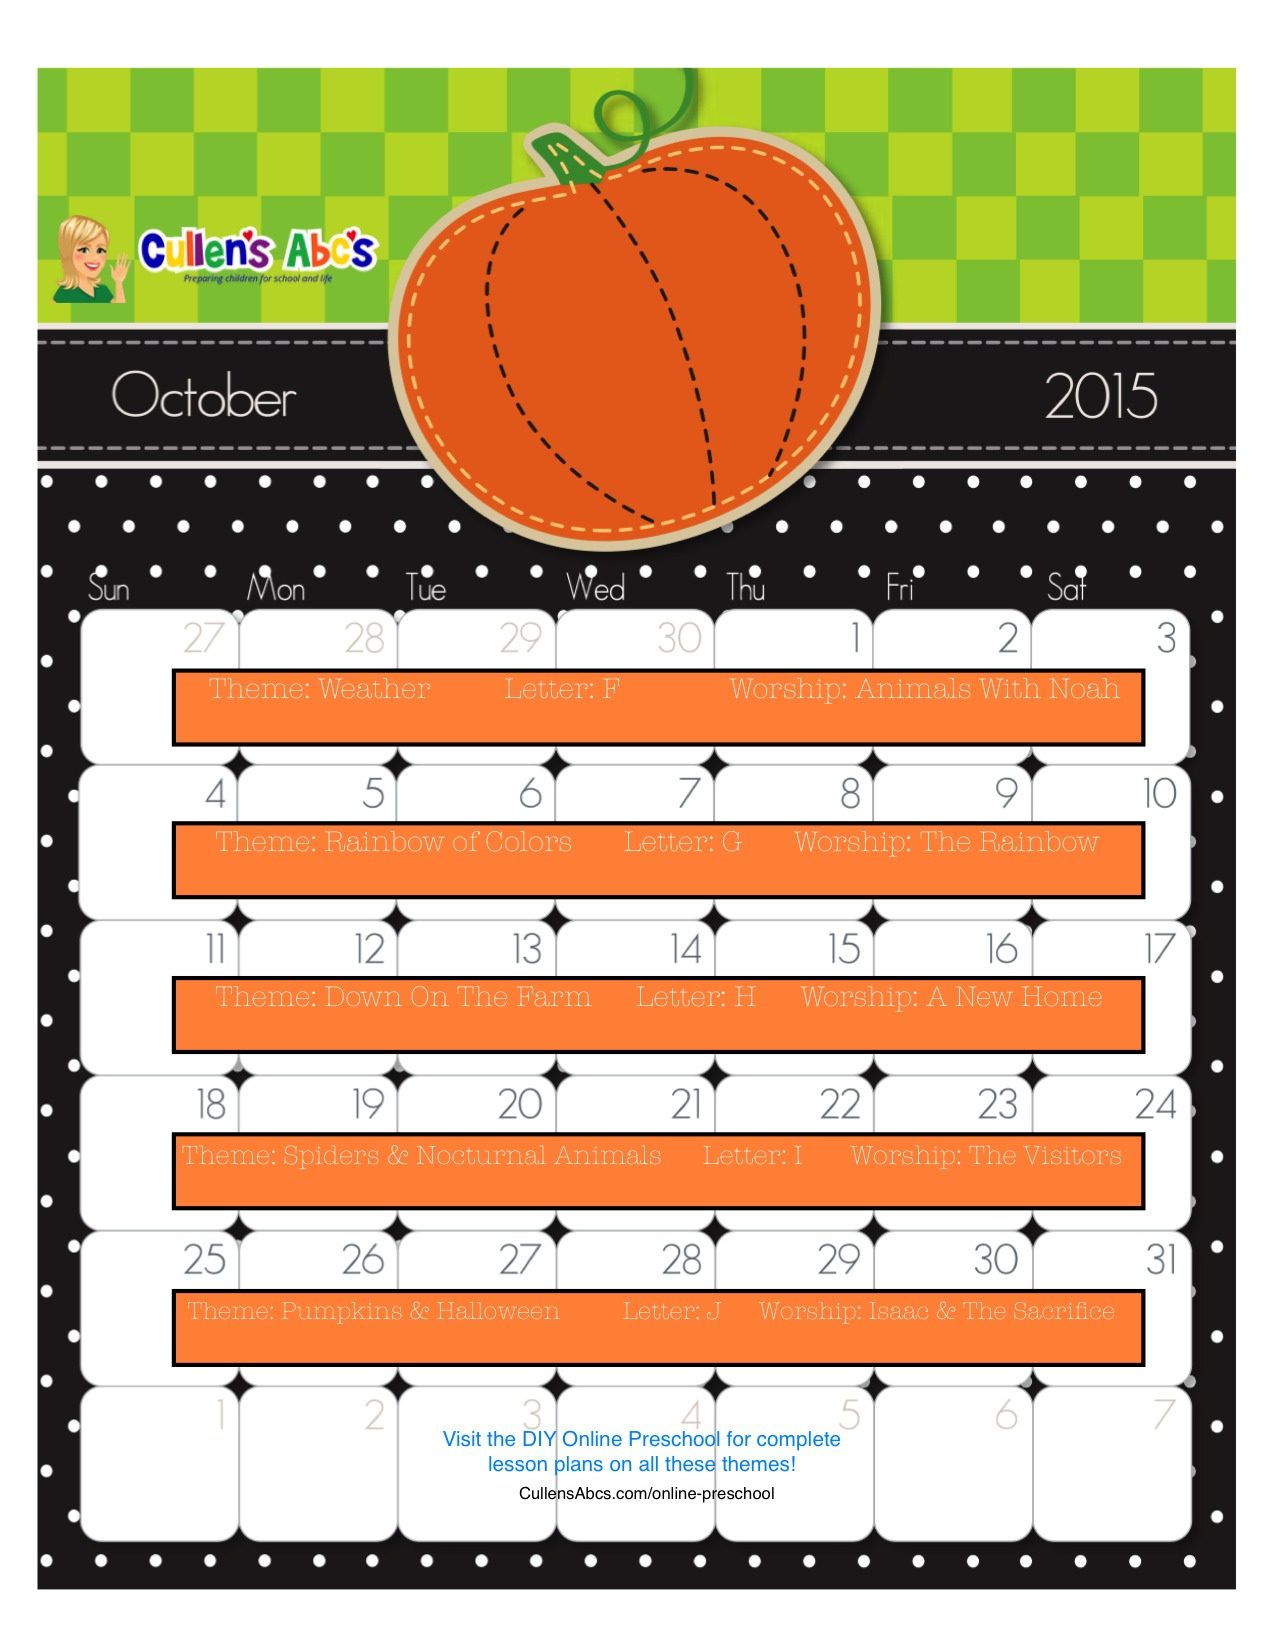 October Online Preschool Calendar 2015